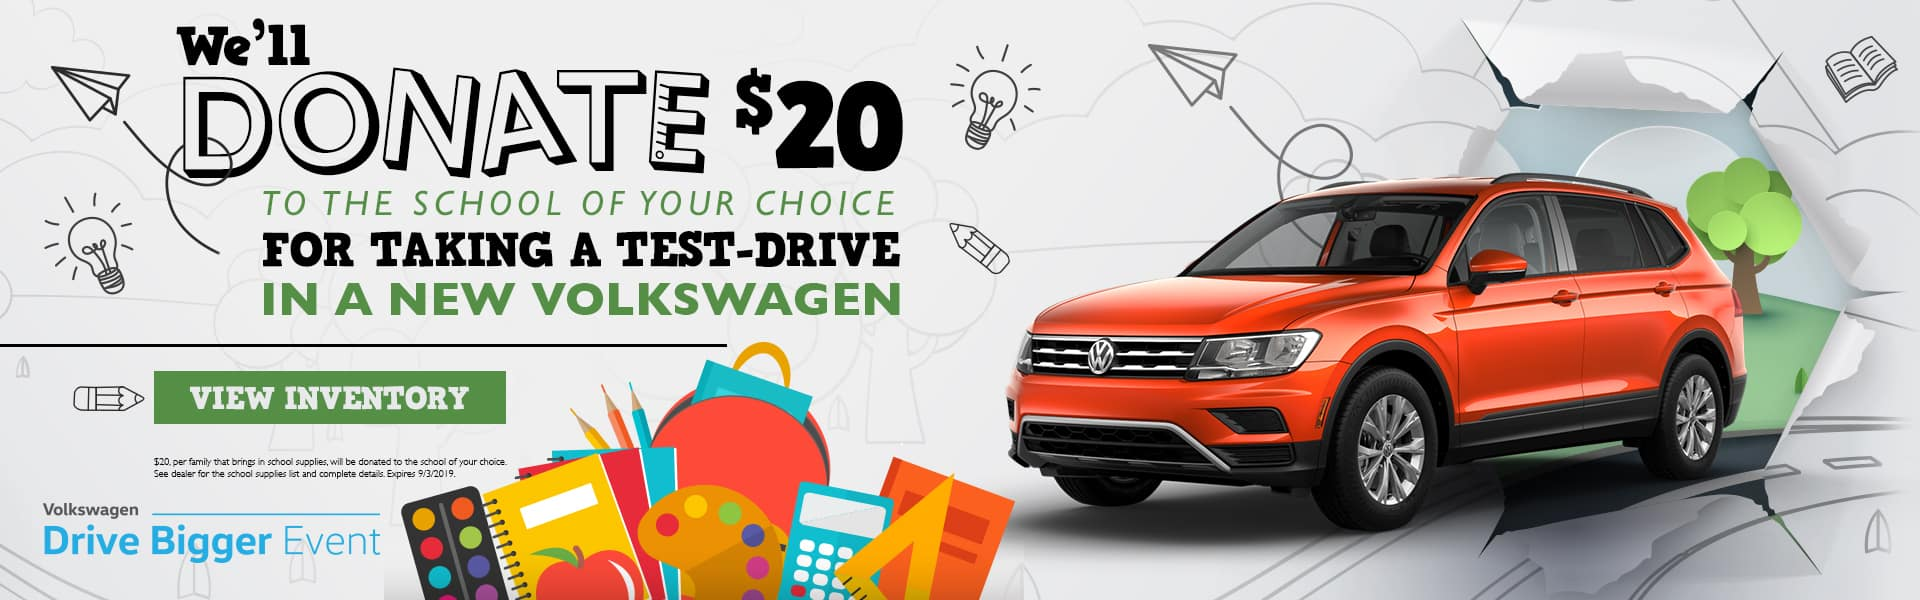 We'll Donate $20 To The School Of Your Choice For Taking A Test-Drive In A New Volkswagen